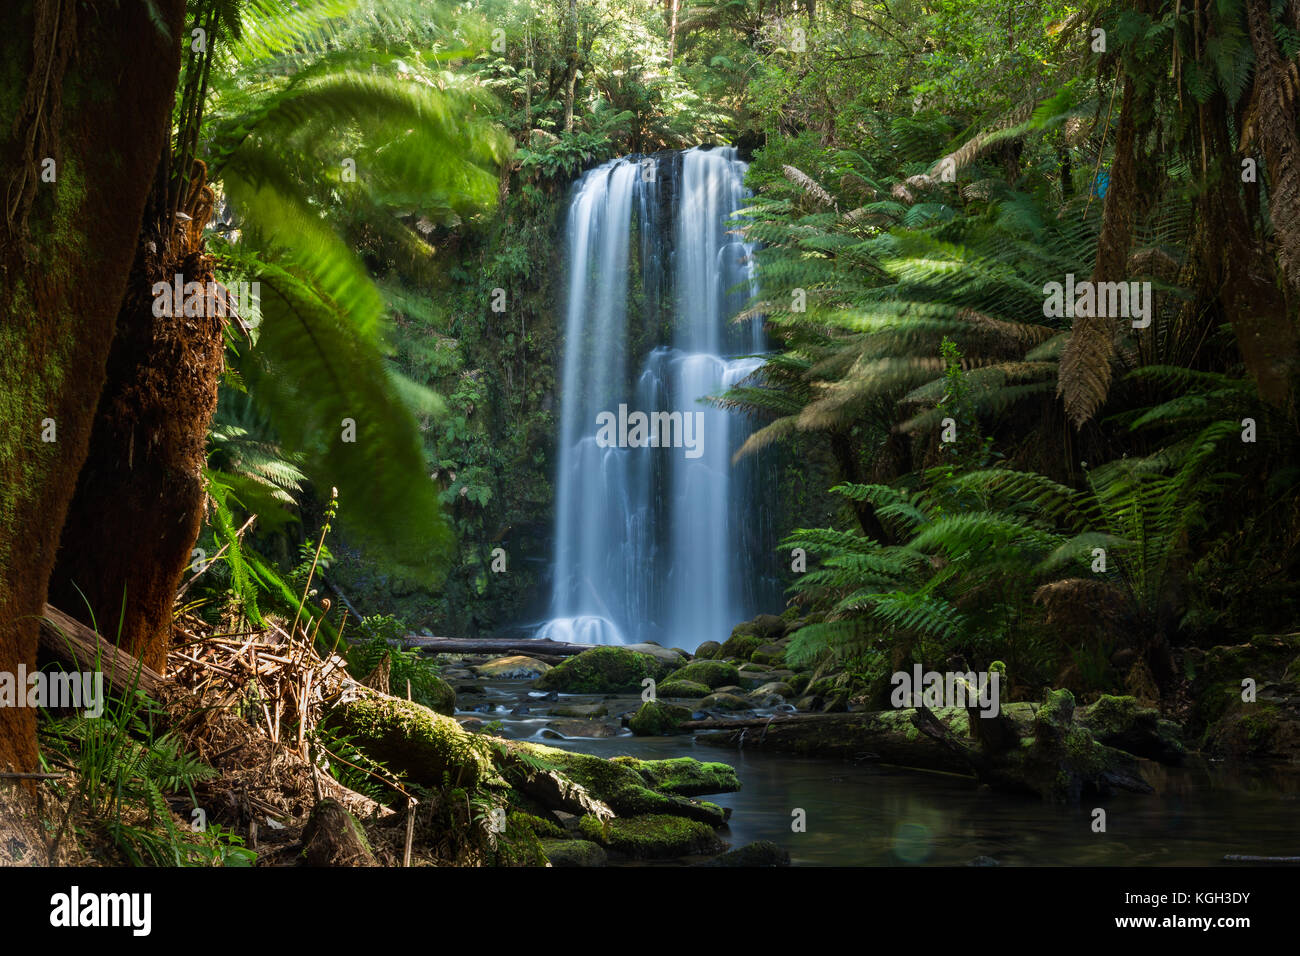 A waterfall called Beauchamp Falls located at Beechforest on the Great Ocean Road. Victoria - Stock Image